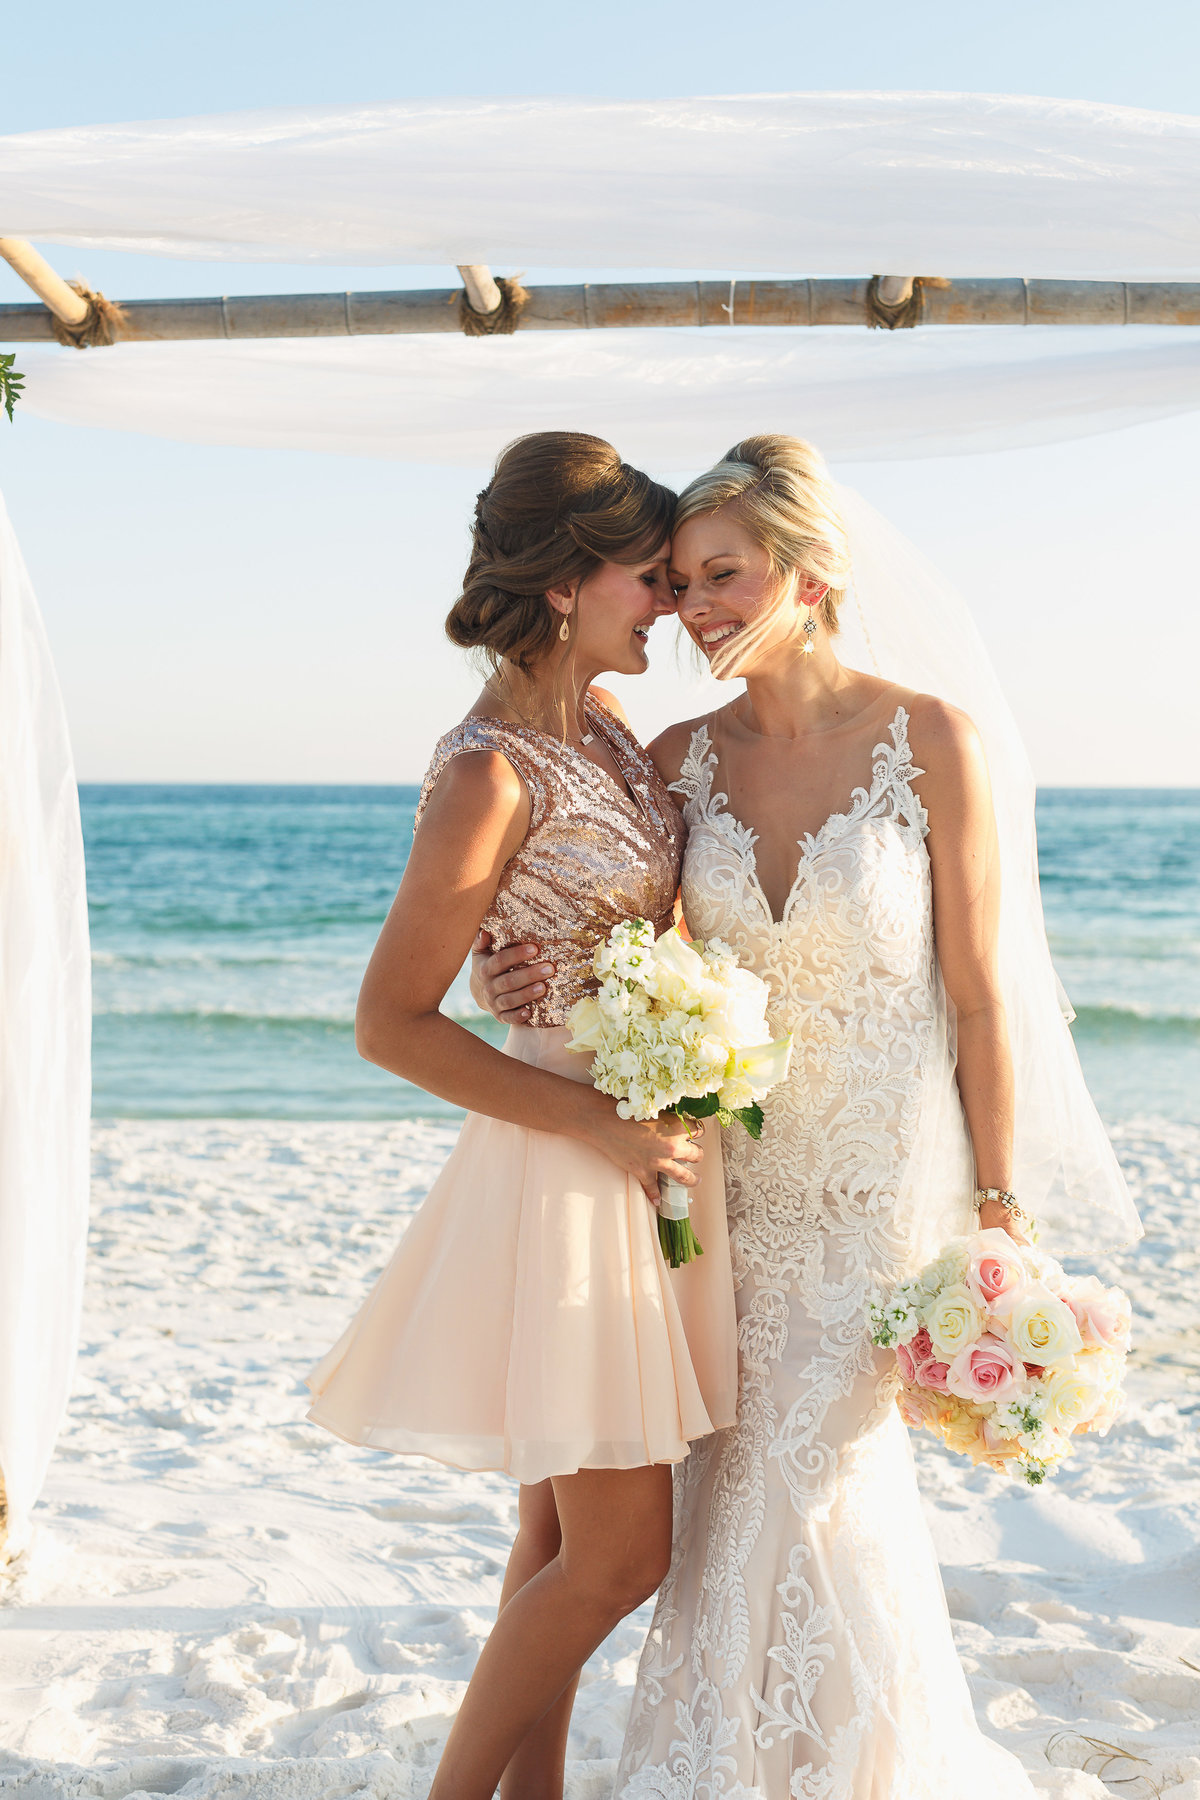 Destination-Beach-Wedding-Desgin-Florida-Jessica-Lea-IMG-0885